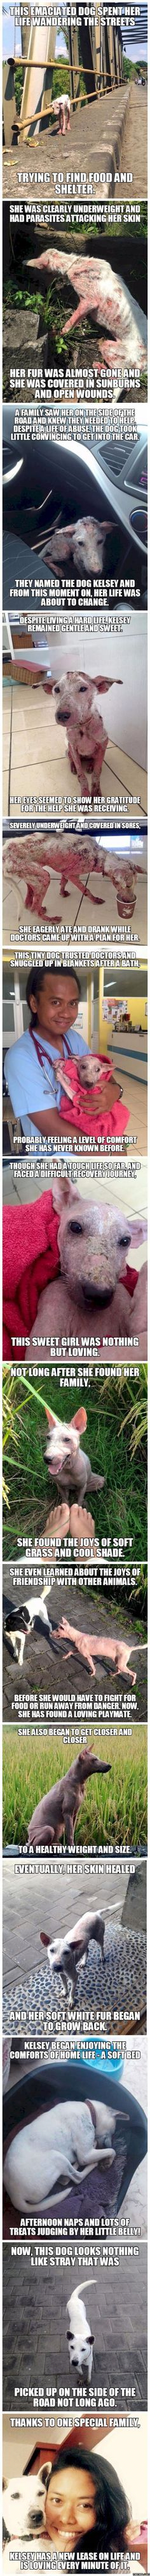 You HAVE to read about this poor puppy who found true happiness in the end